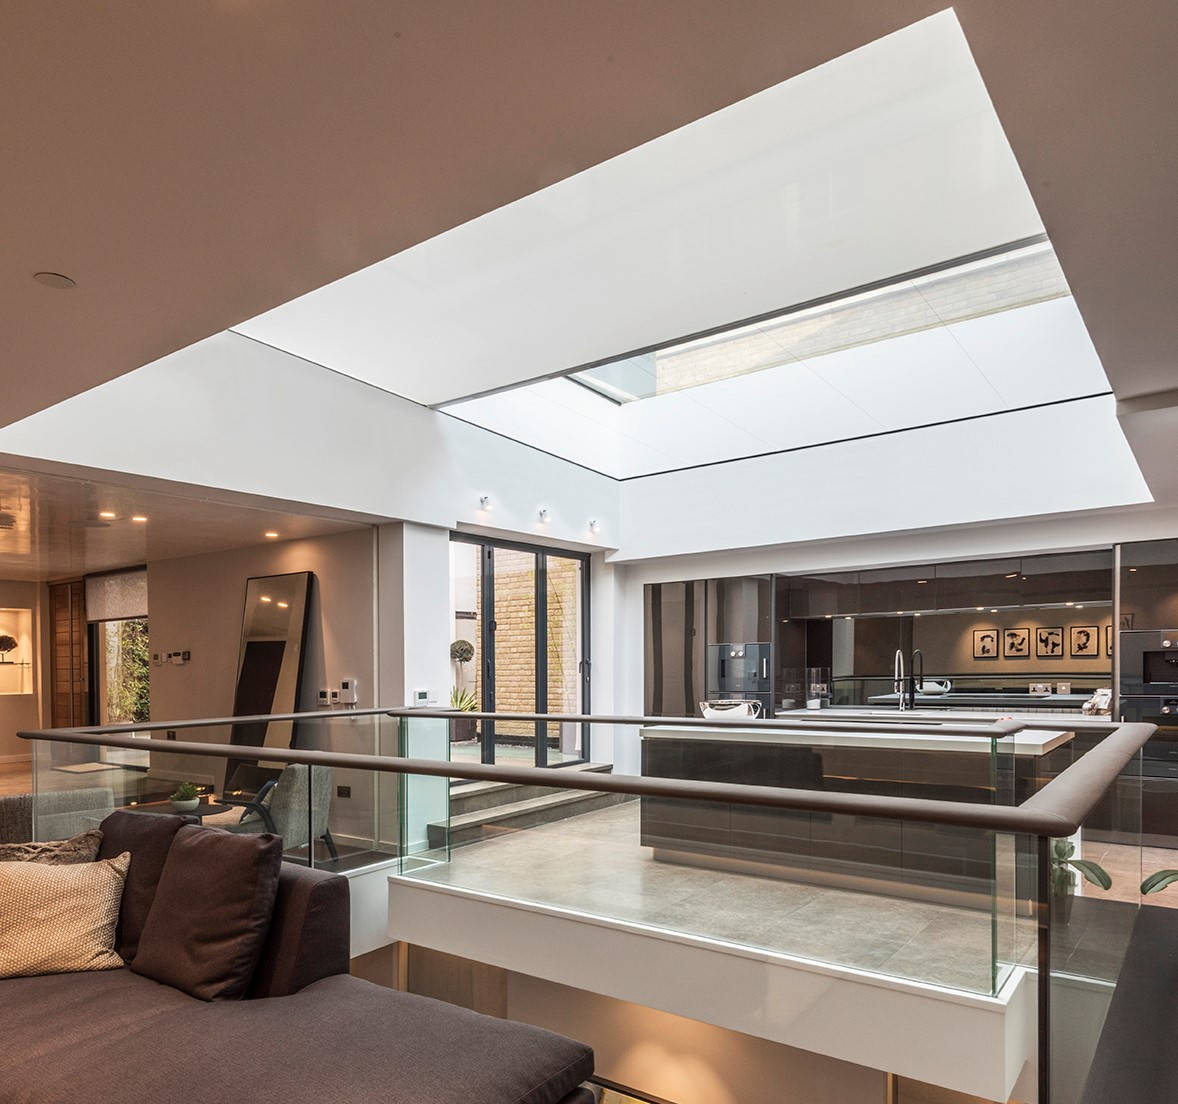 structural skylight box